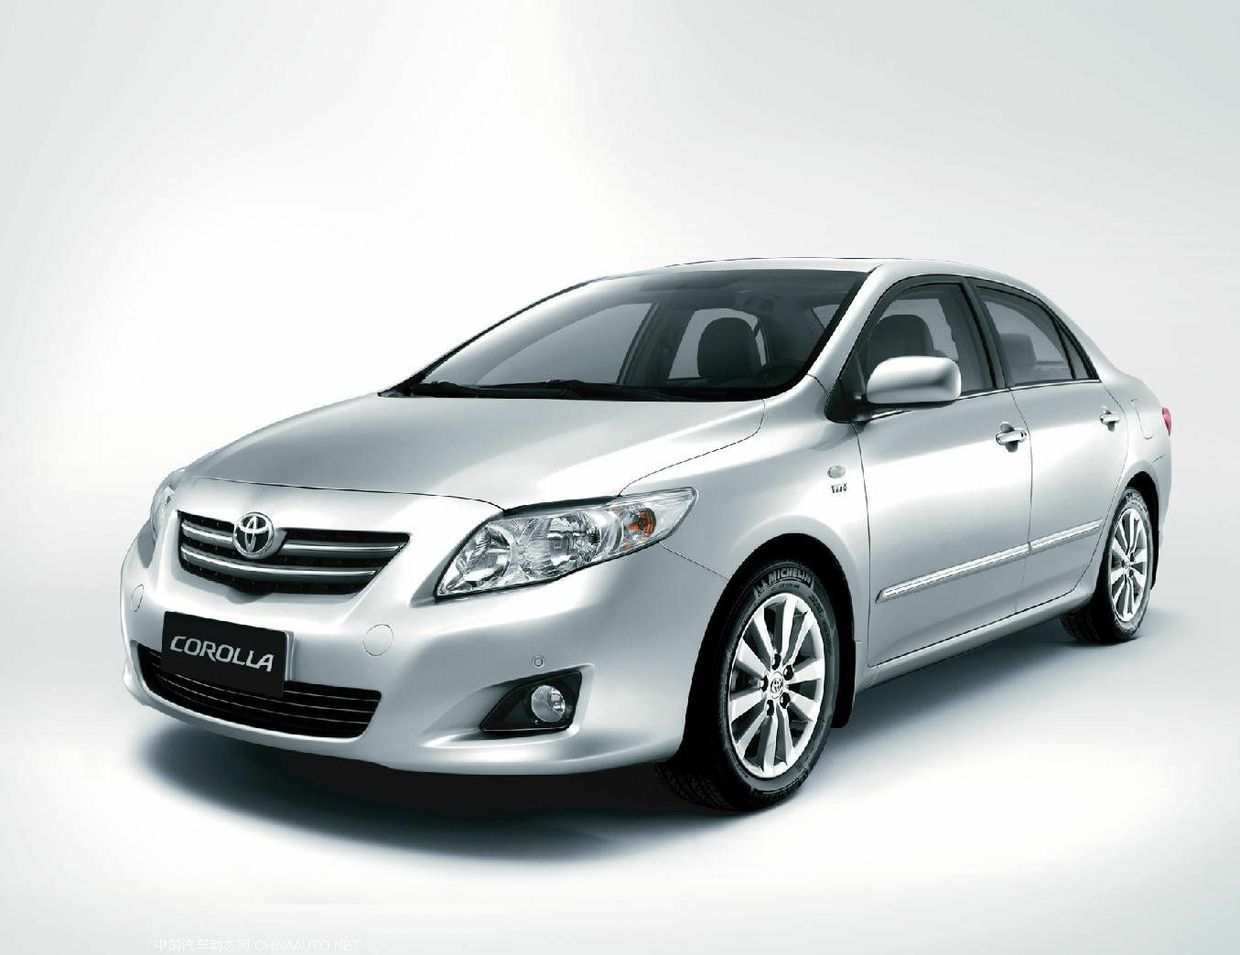 Toyota Corolla (2009-2011) Workshop Service Repair Manual